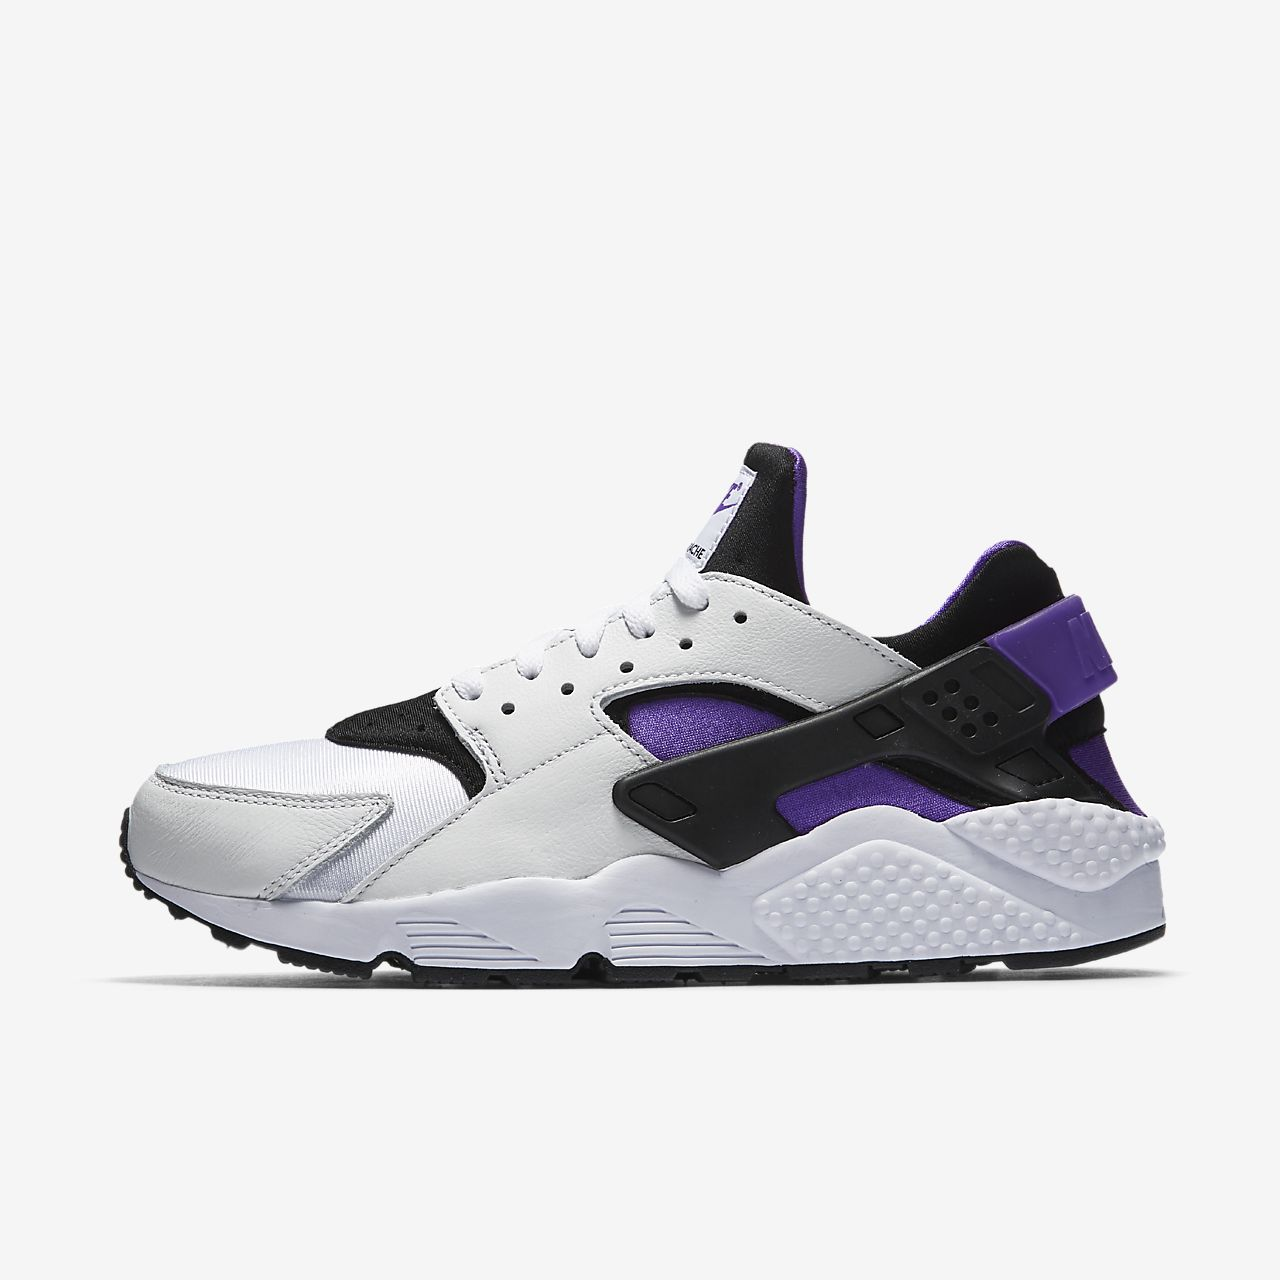 8a82a2d17f9 Nike Air Huarache  91 QS Men s Shoe. Nike.com